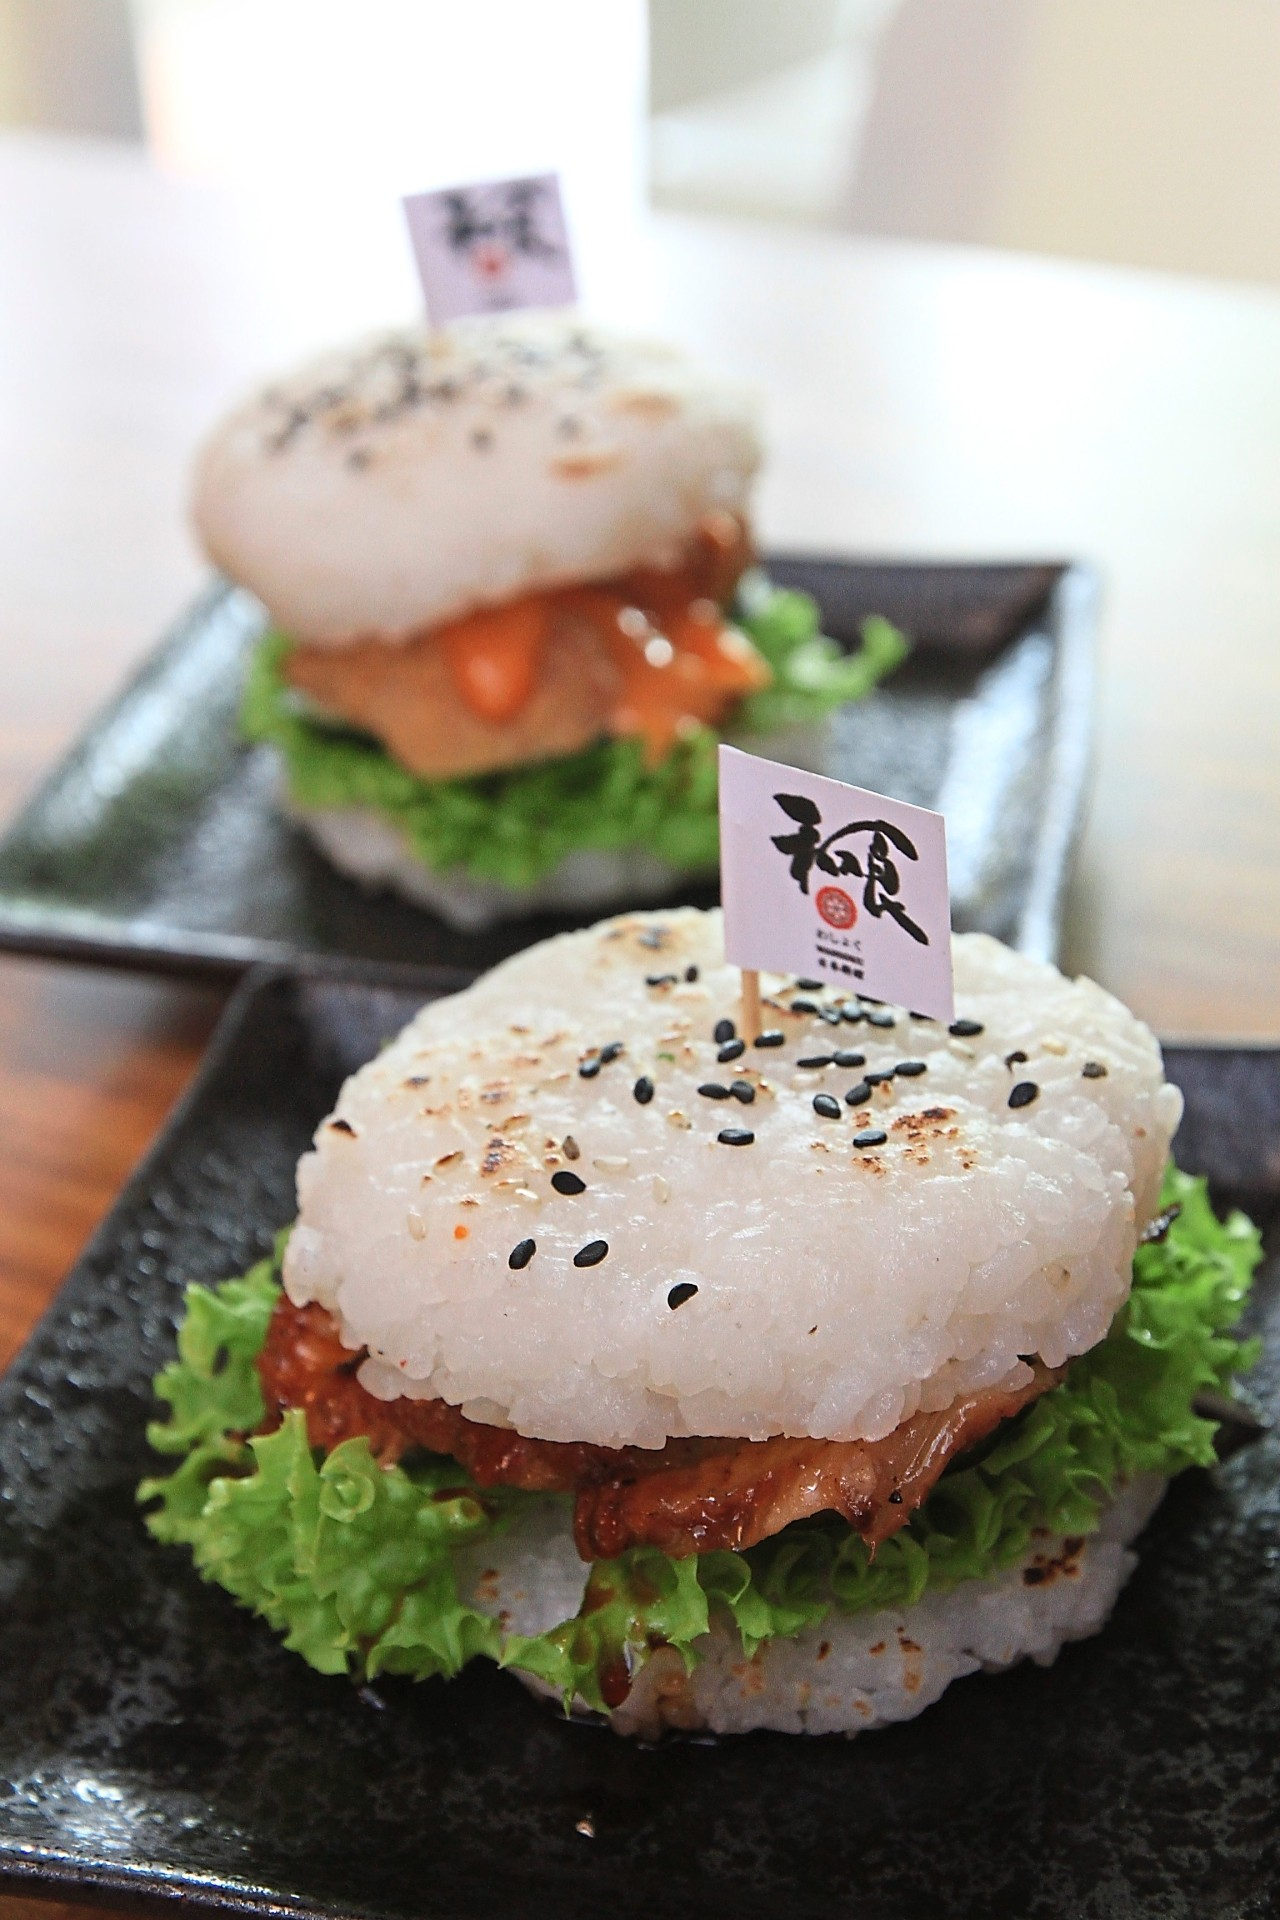 Unagi Sushi Burger (front) and Hot and Spicy Tori Karaage Sushi Burger use sushi rice patties as the burger bun.